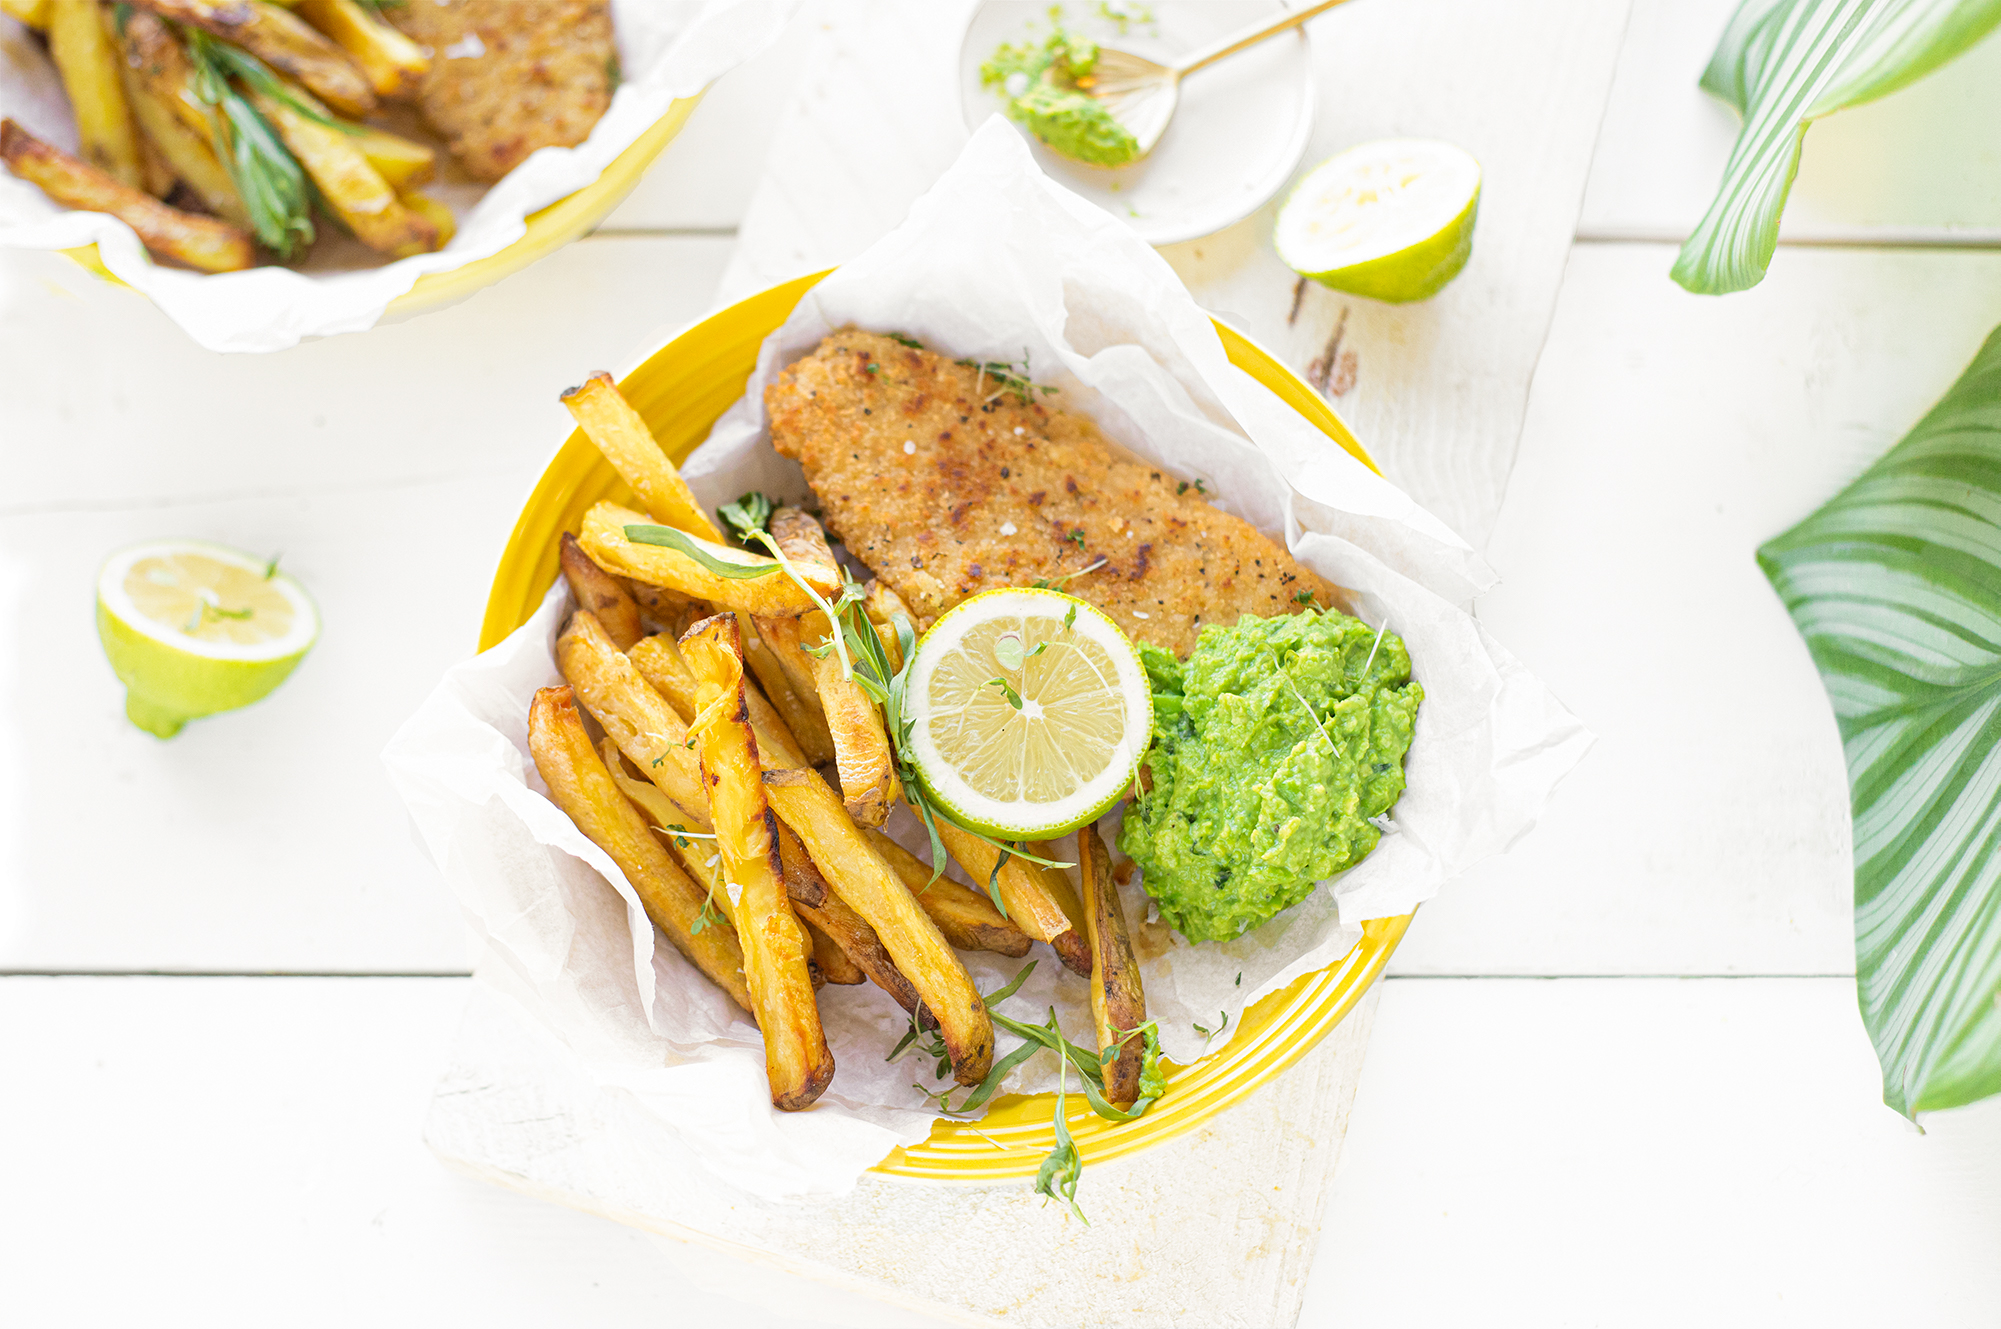 Vegetarische Fish & Chips met erwten dragon dip